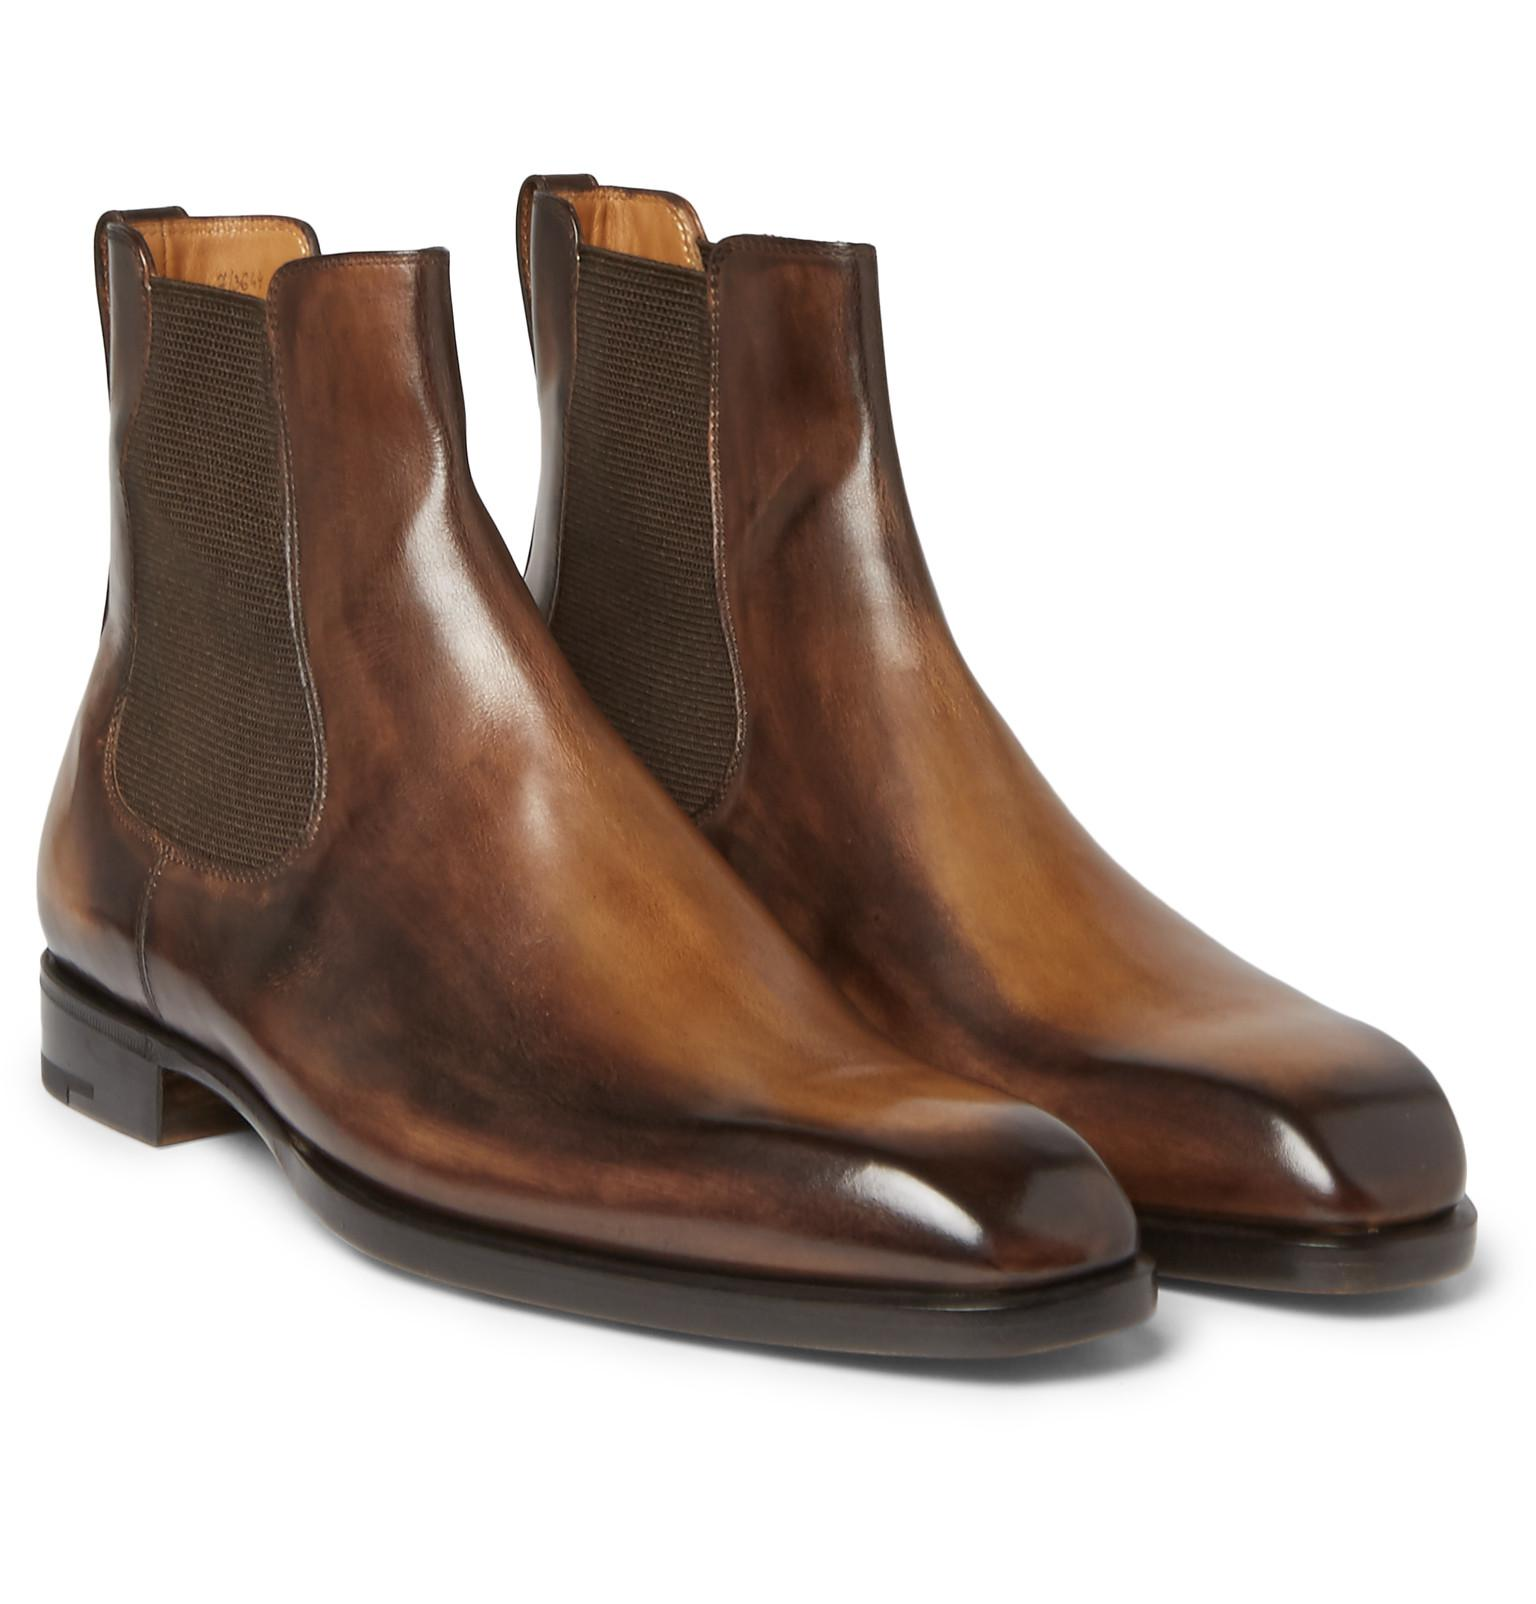 Lyst Berluti Leather Chelsea Boots In Brown For Men